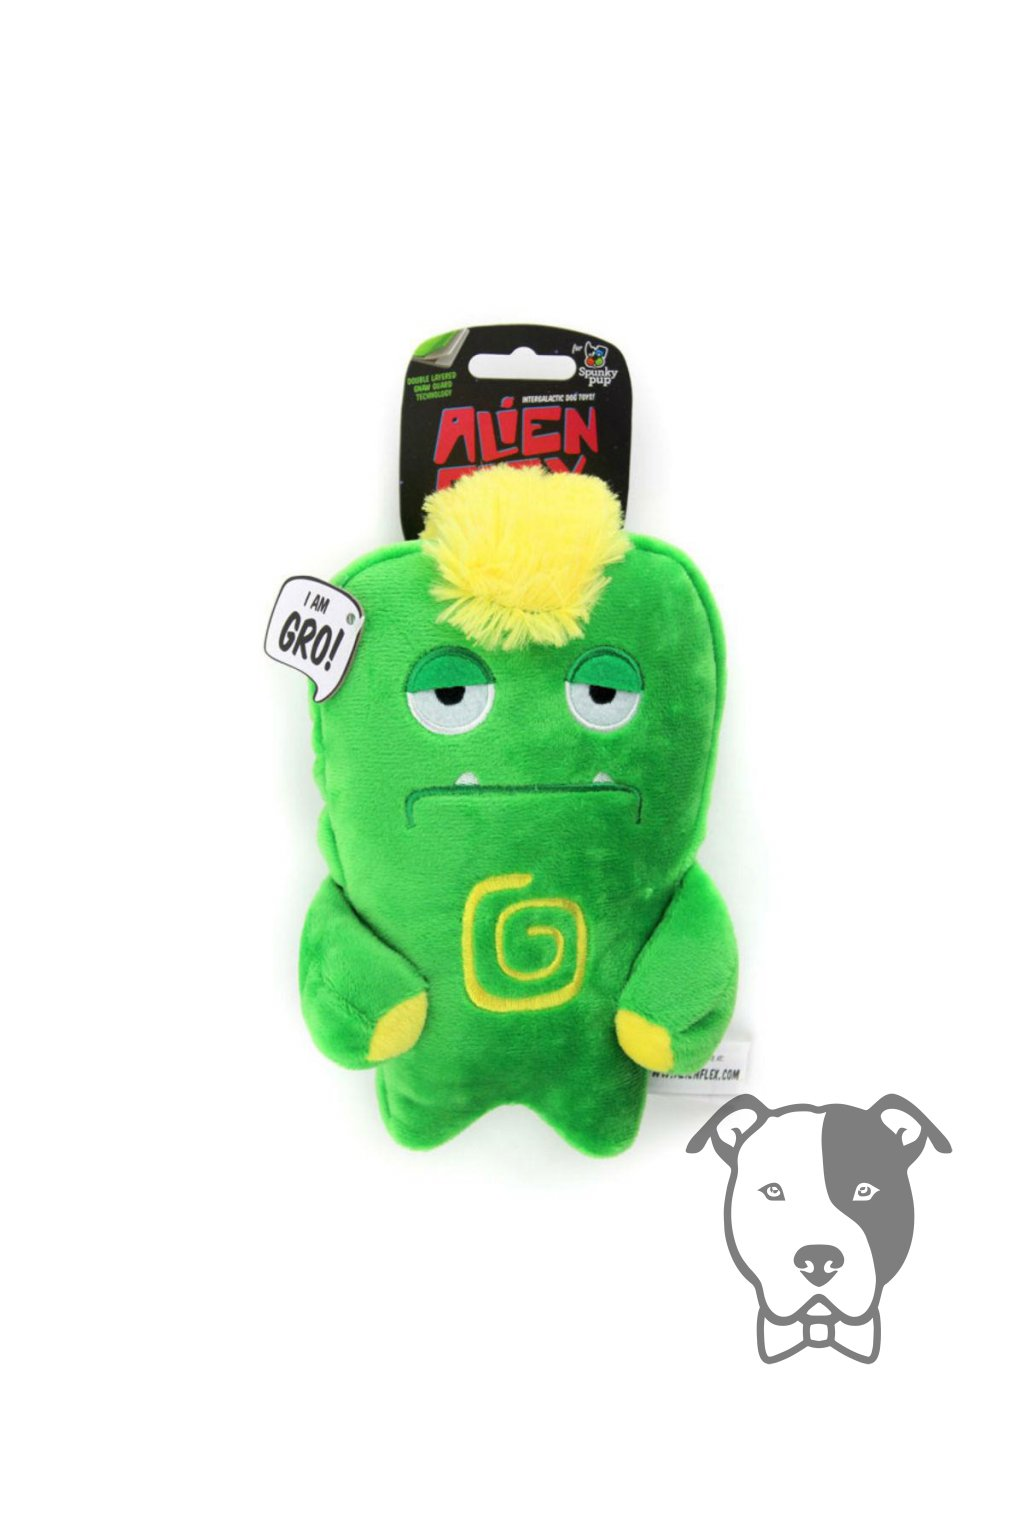 spunky pup alien flex plush dog toy bubu 2308